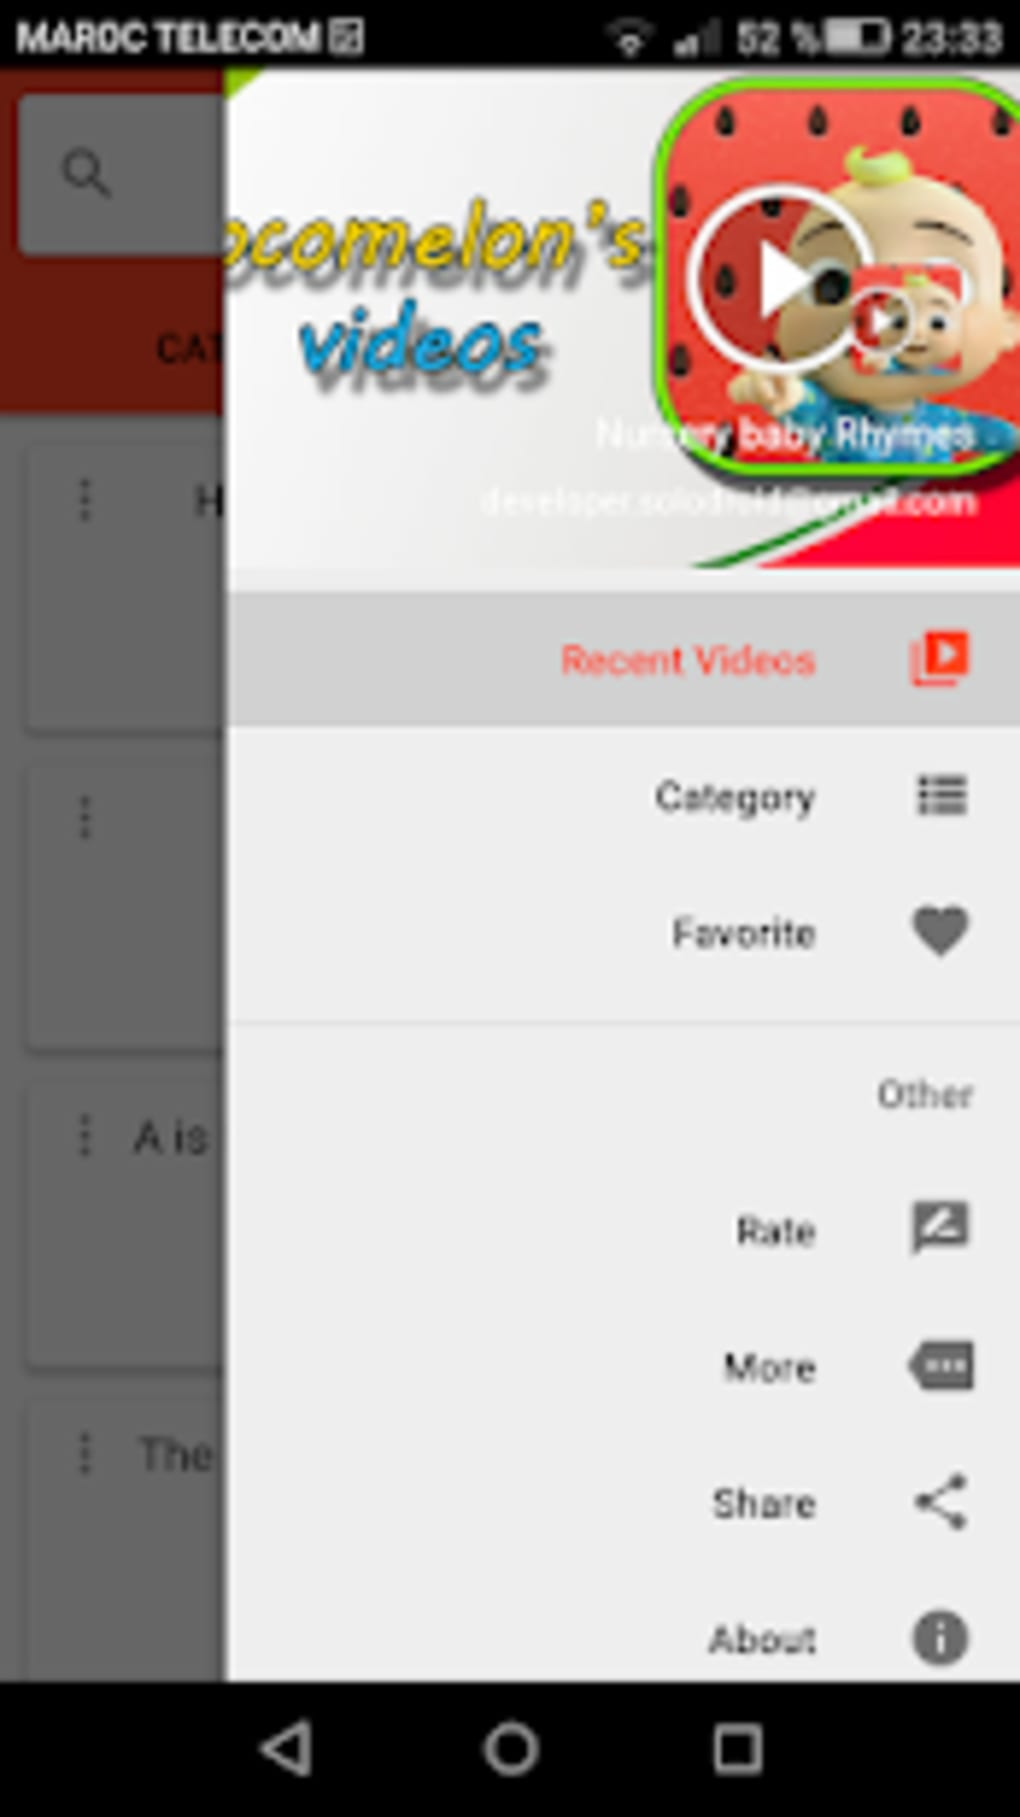 Nursery baby Rhymes for Android - Download